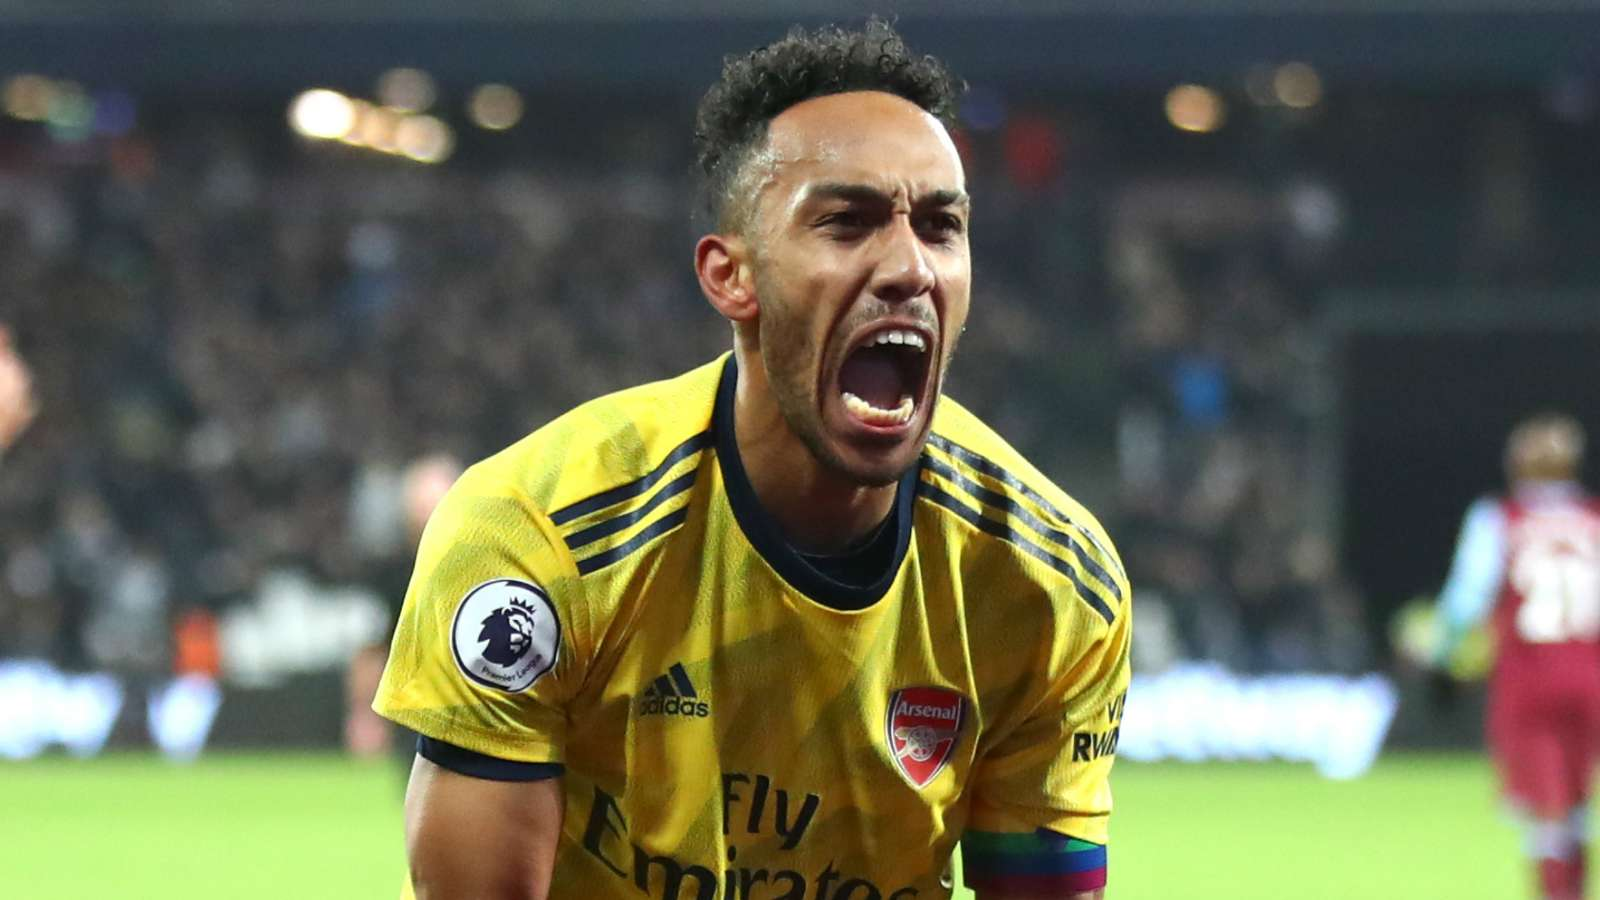 Pierre-Emerick Aubameyang Arsenal 2019-20